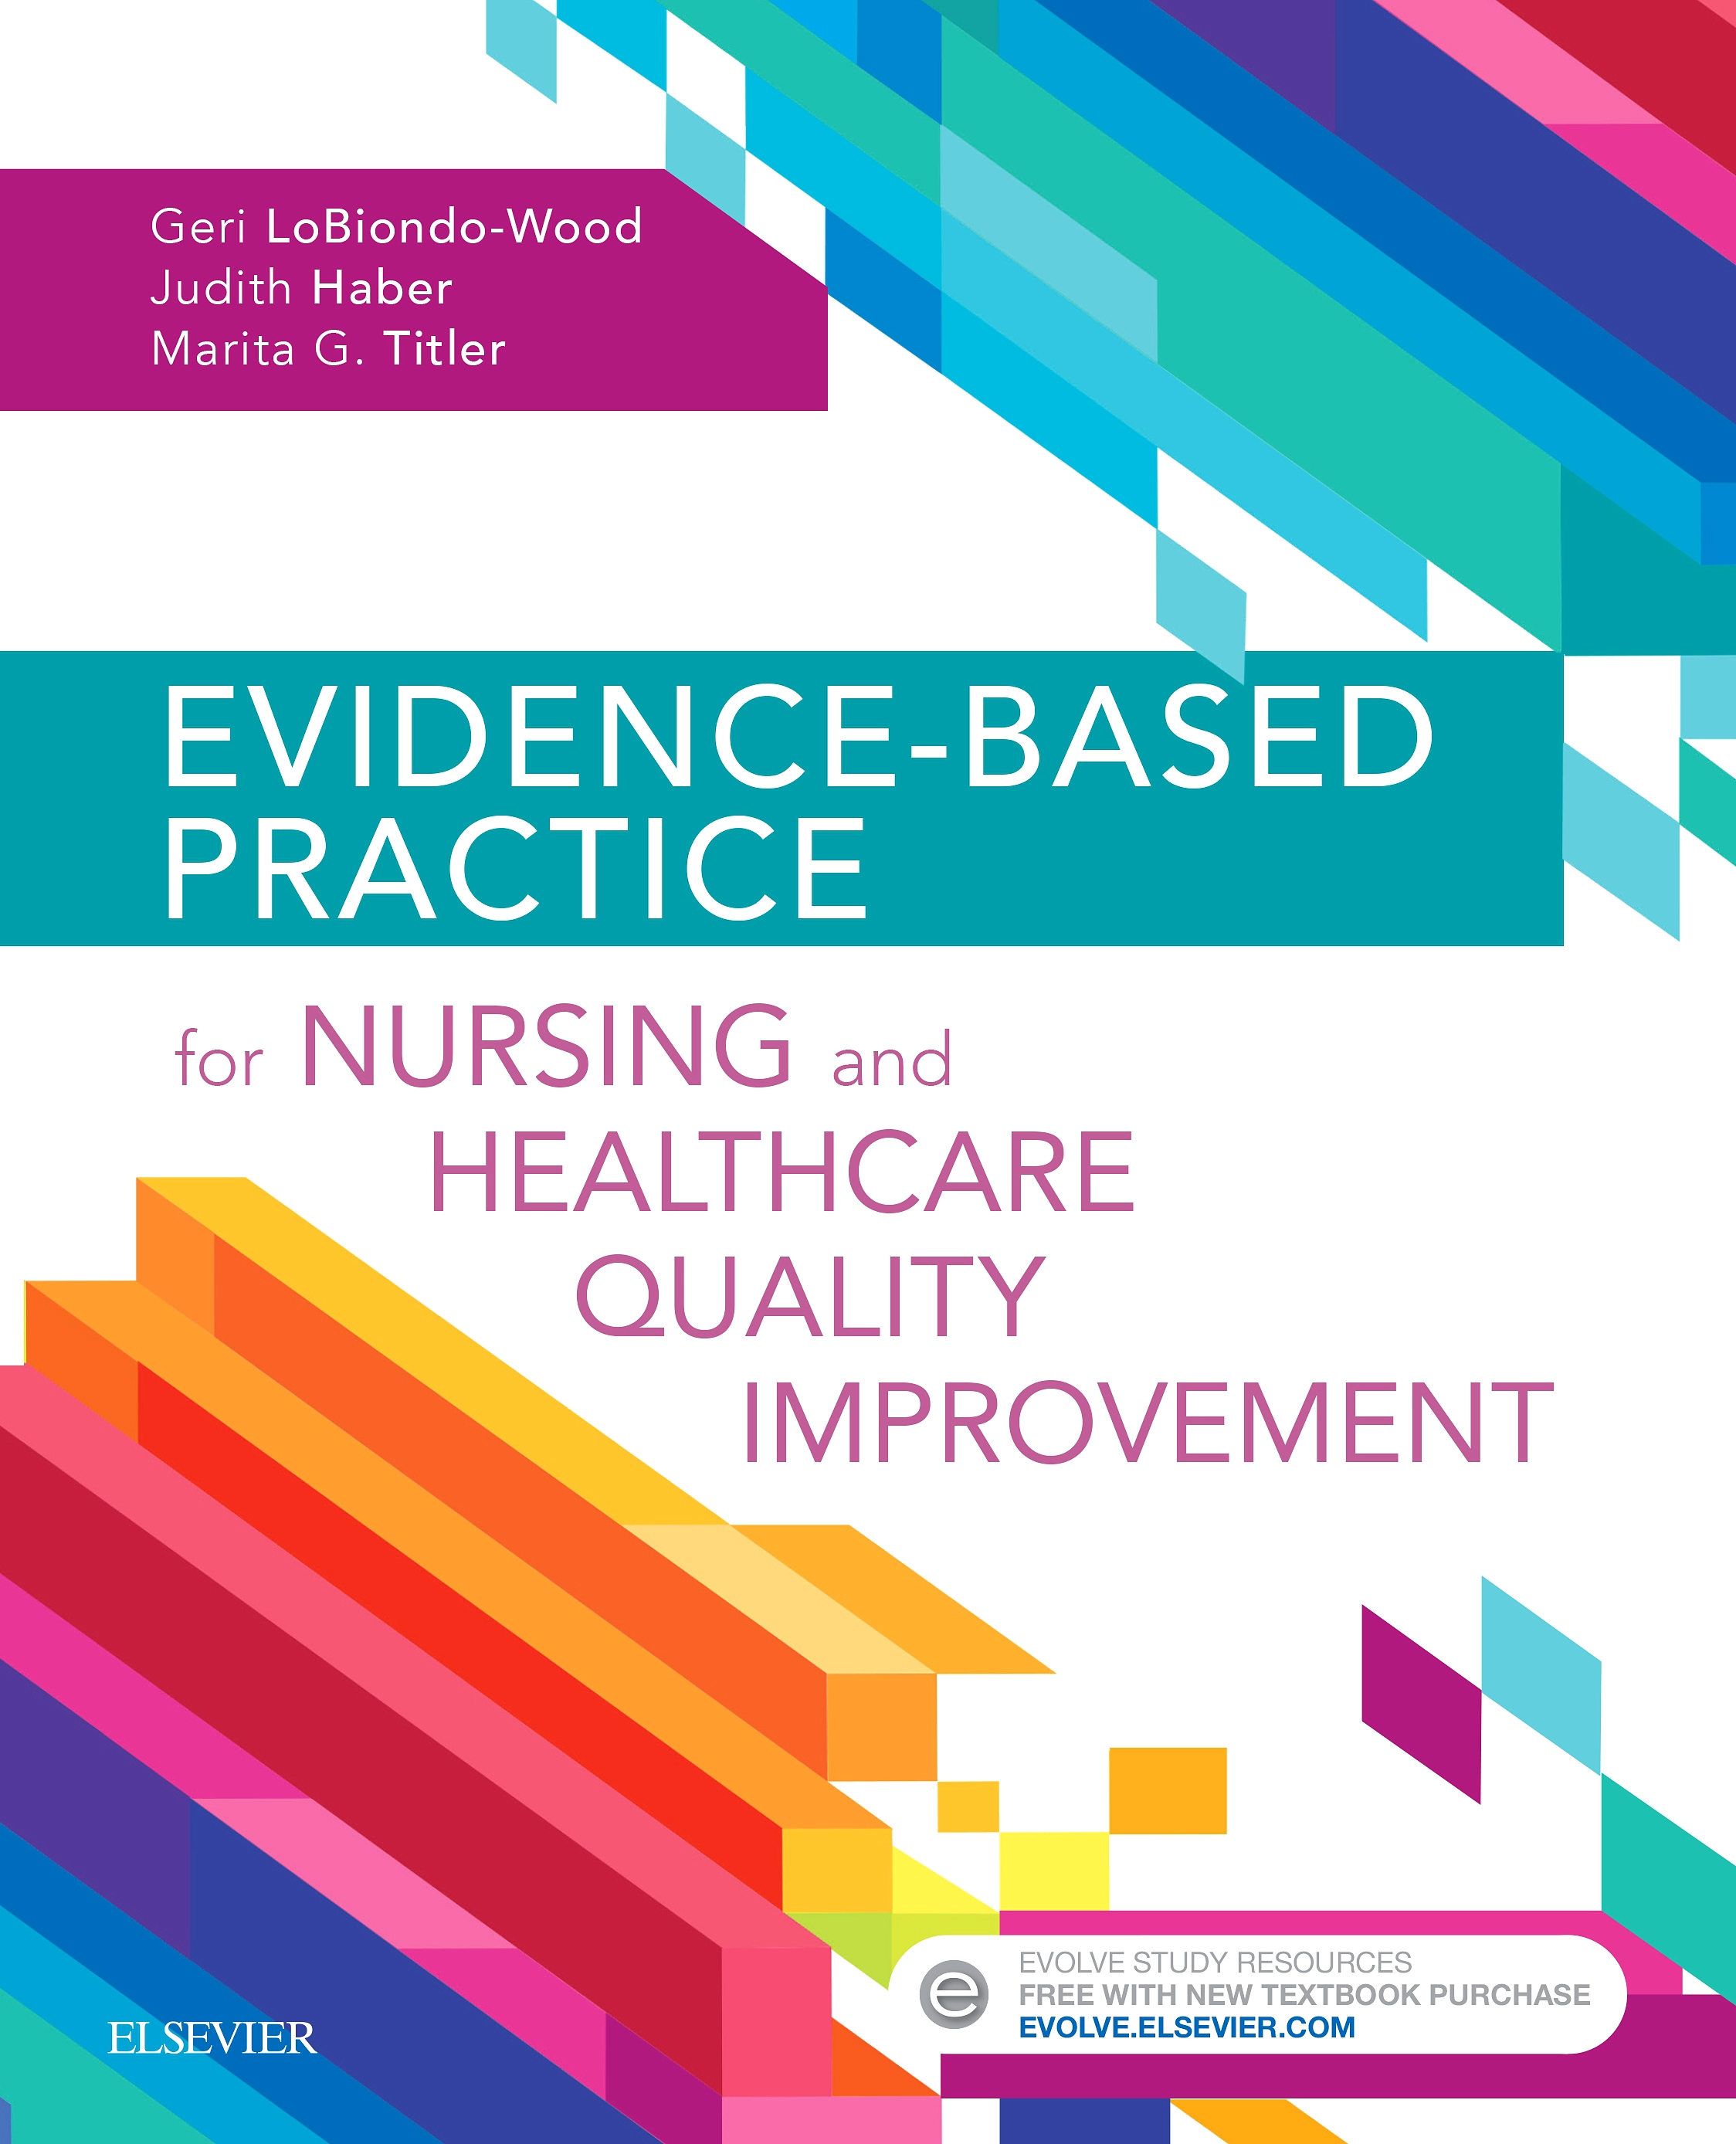 Evolve Resources for Evidence-Based Practice for Nursing and Healthcare Quality Improvement